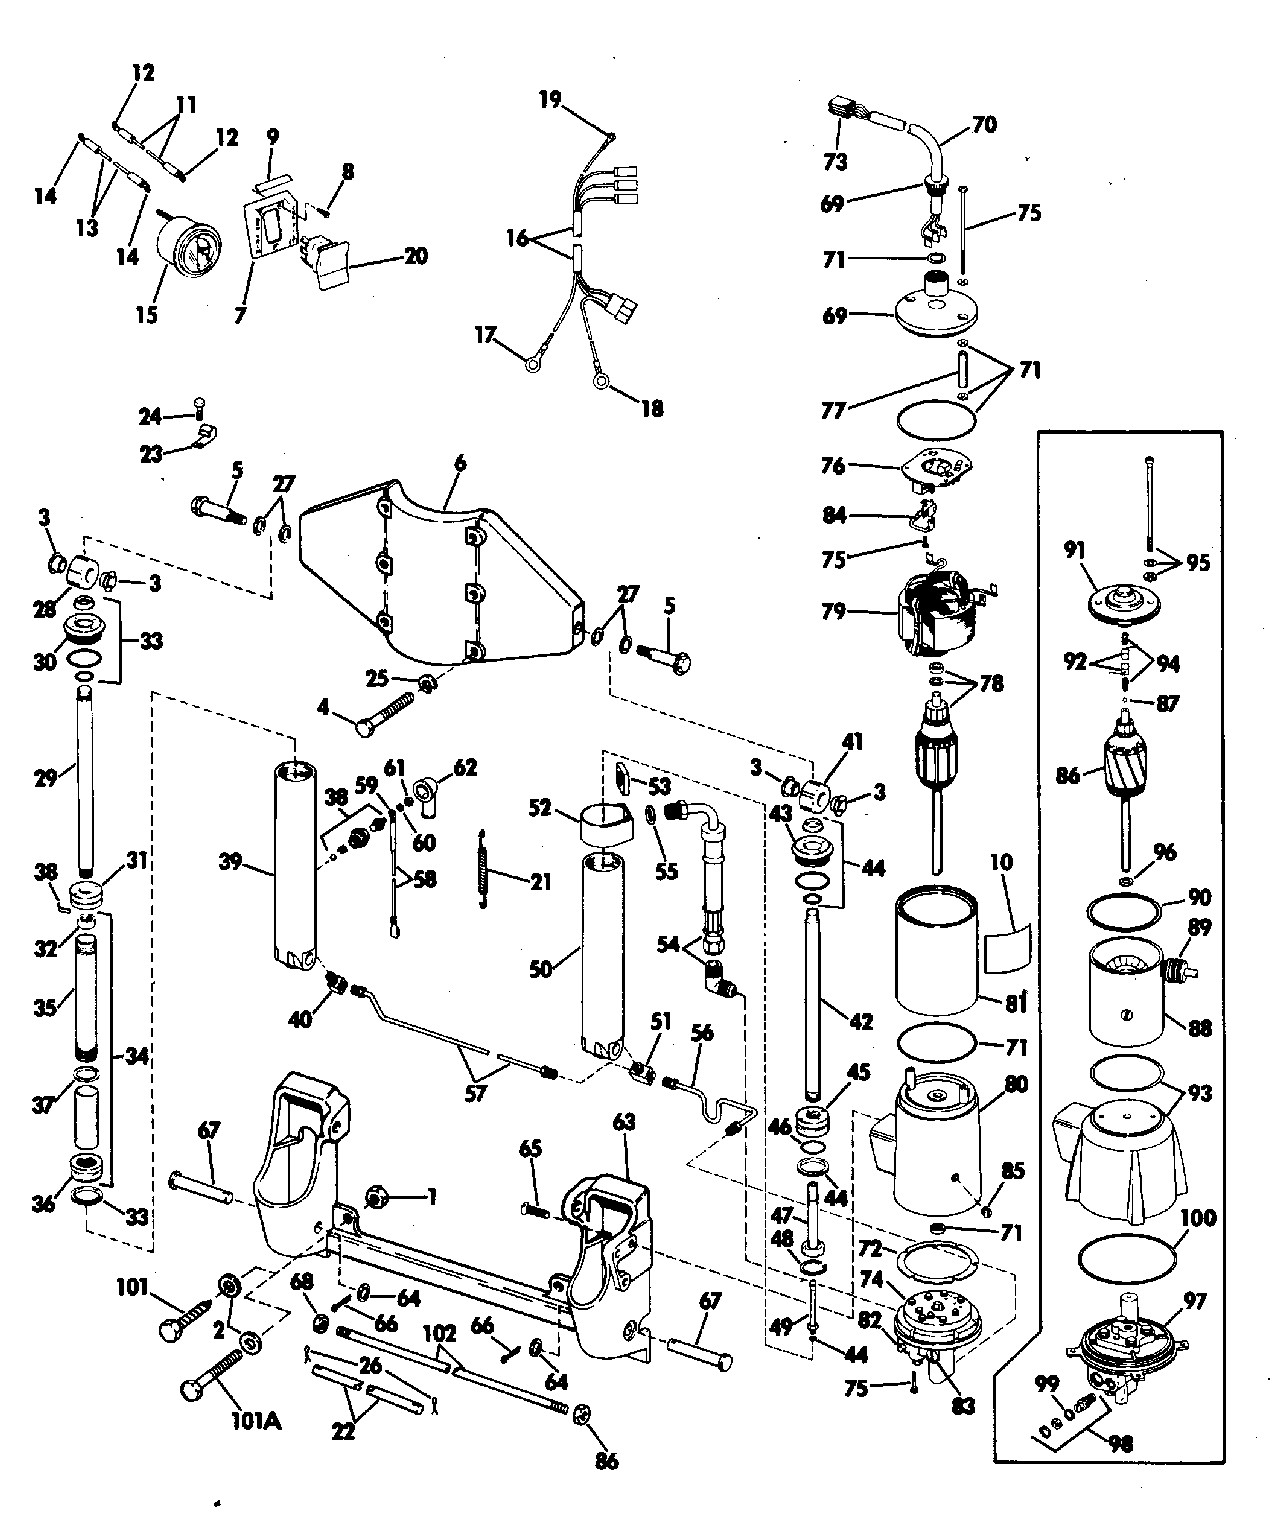 Evinrude Outboard Parts Diagram Power Tilt and Trim 50 Hp Electrical 1974 Accessories for 1974 Of Evinrude Outboard Parts Diagram